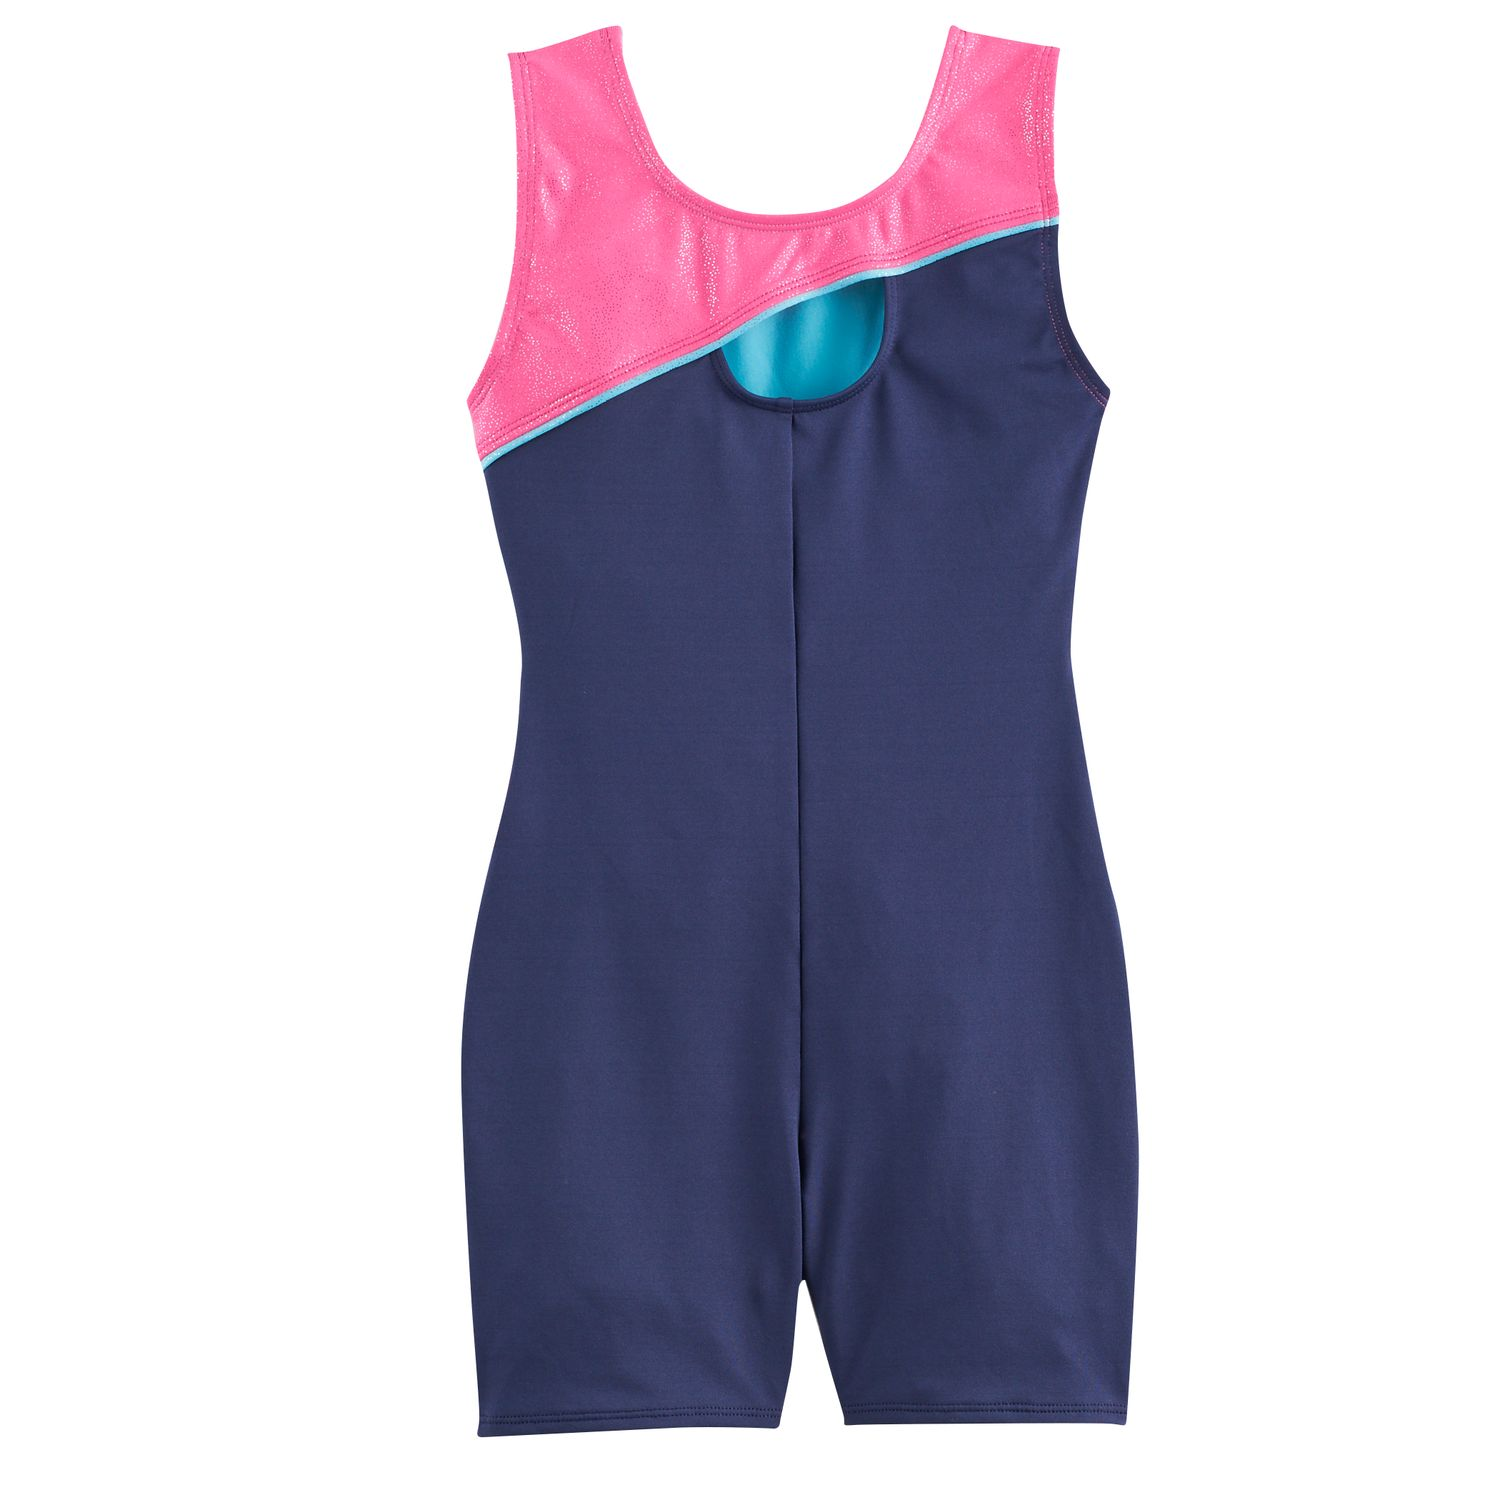 d66d30b25633 Girls Active Kids Gymnastics Clothing